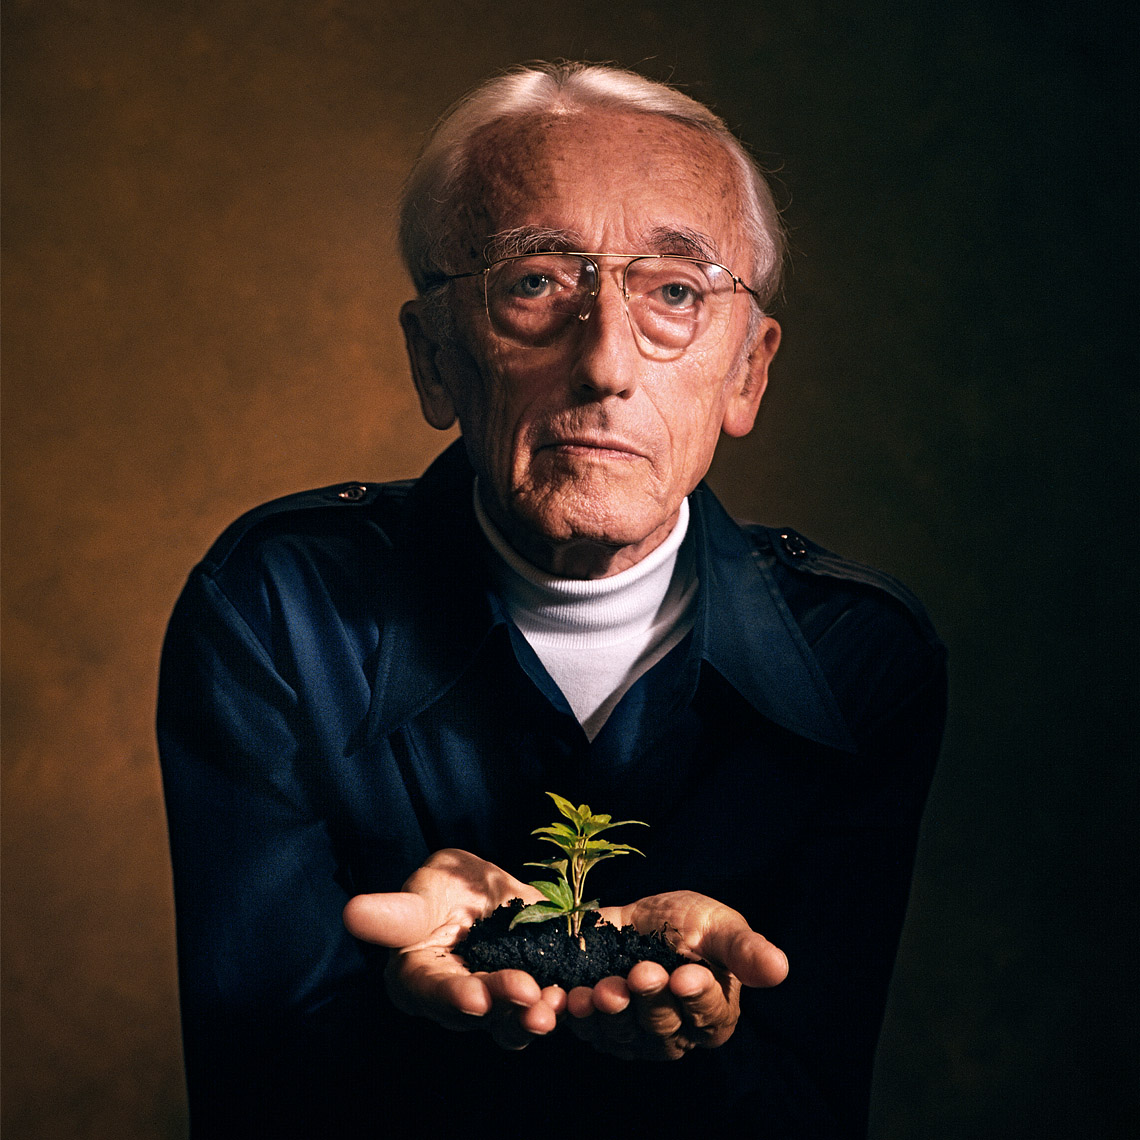 jacques_cousteau_2